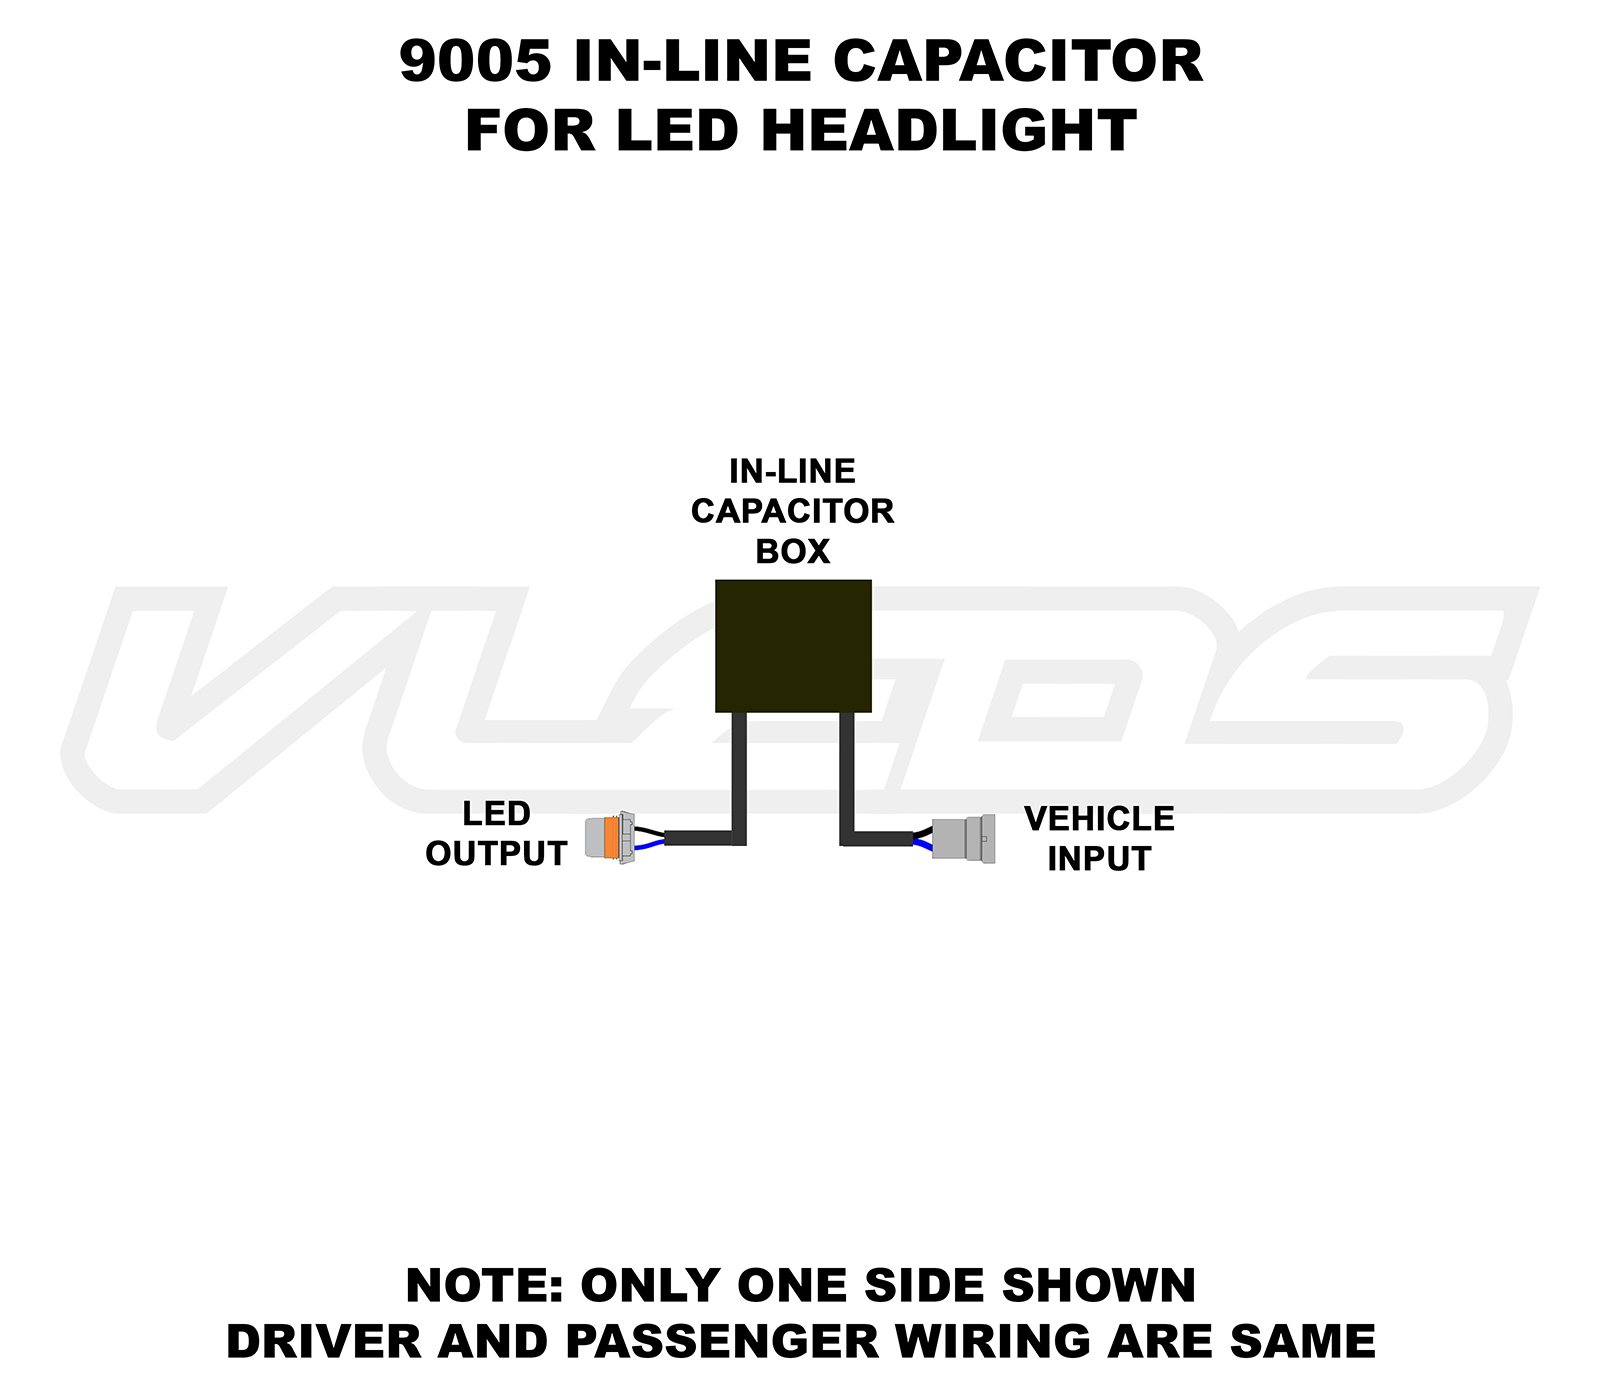 Wiring Diagrams Capacitor Led Circuit 9005 In Line